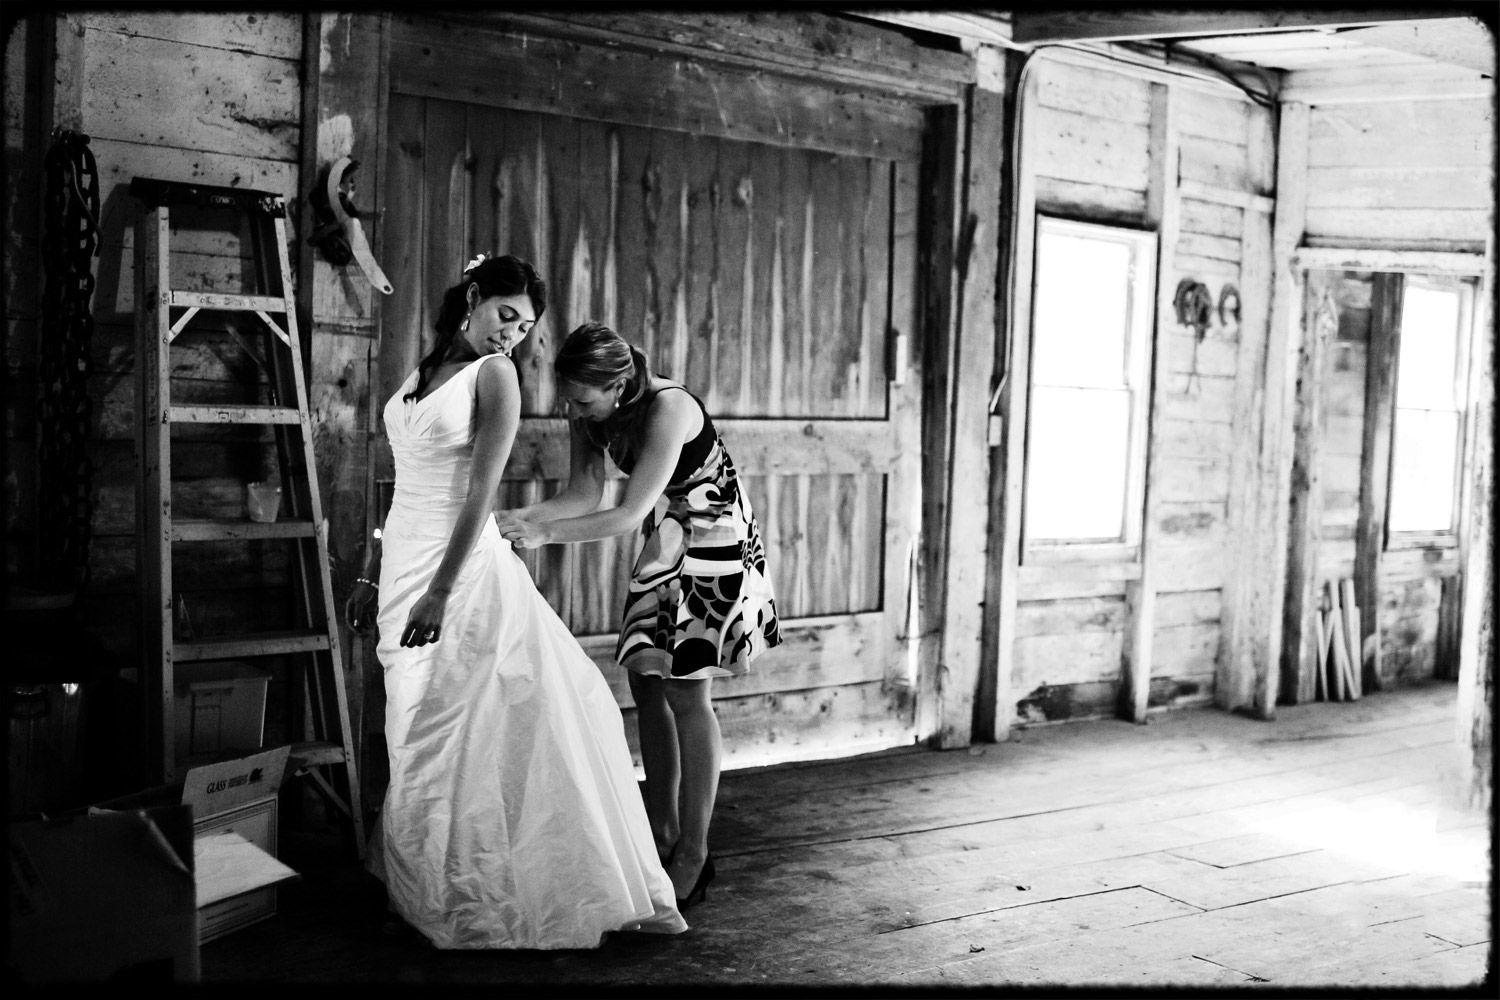 wedding_bustle_in_barn_maine